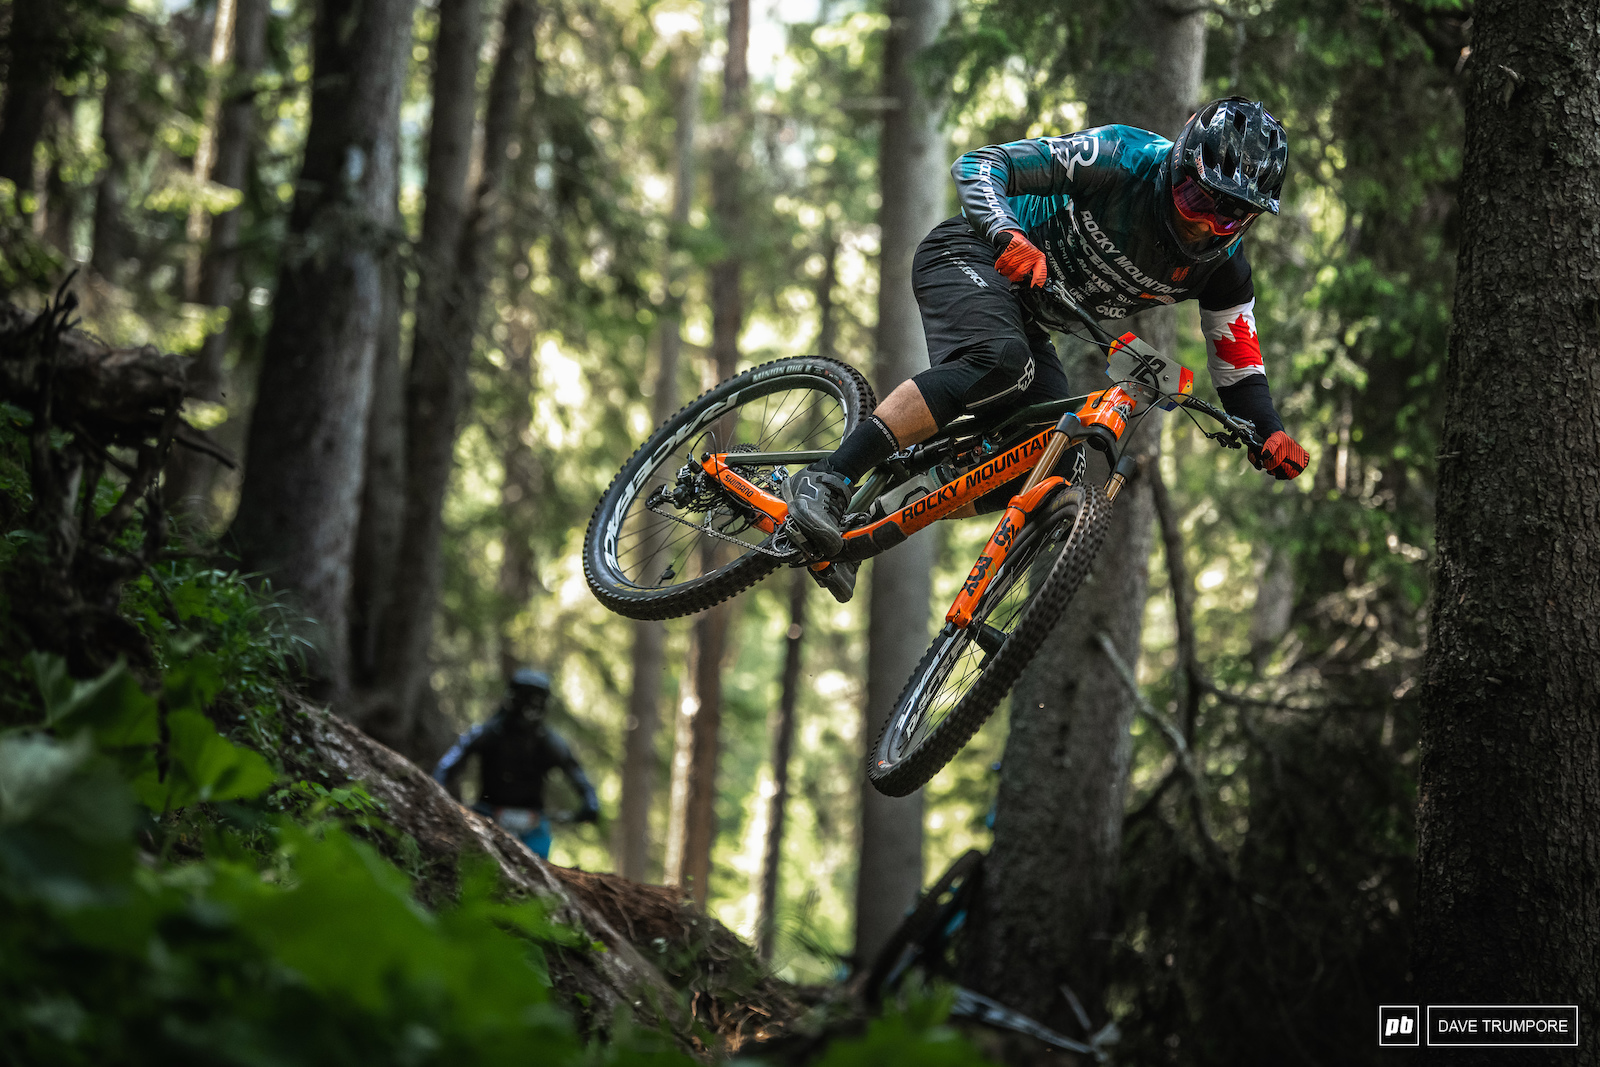 Remi Gauvn sending some big steep gaps in the woods on Stage 3.